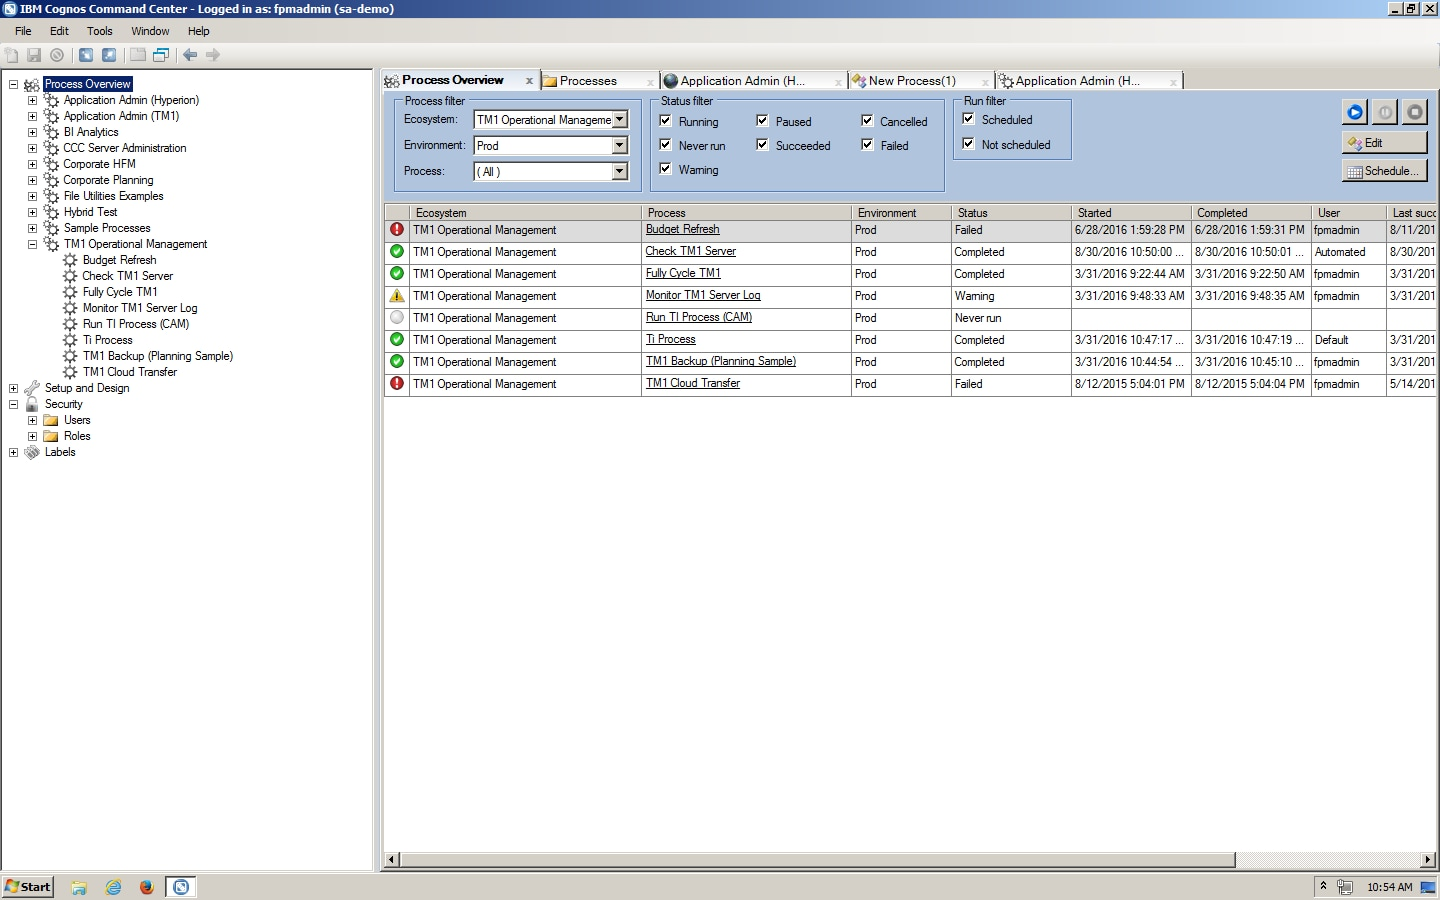 Screenshot showing the Process Overview tab in IBM Cognos Command Center